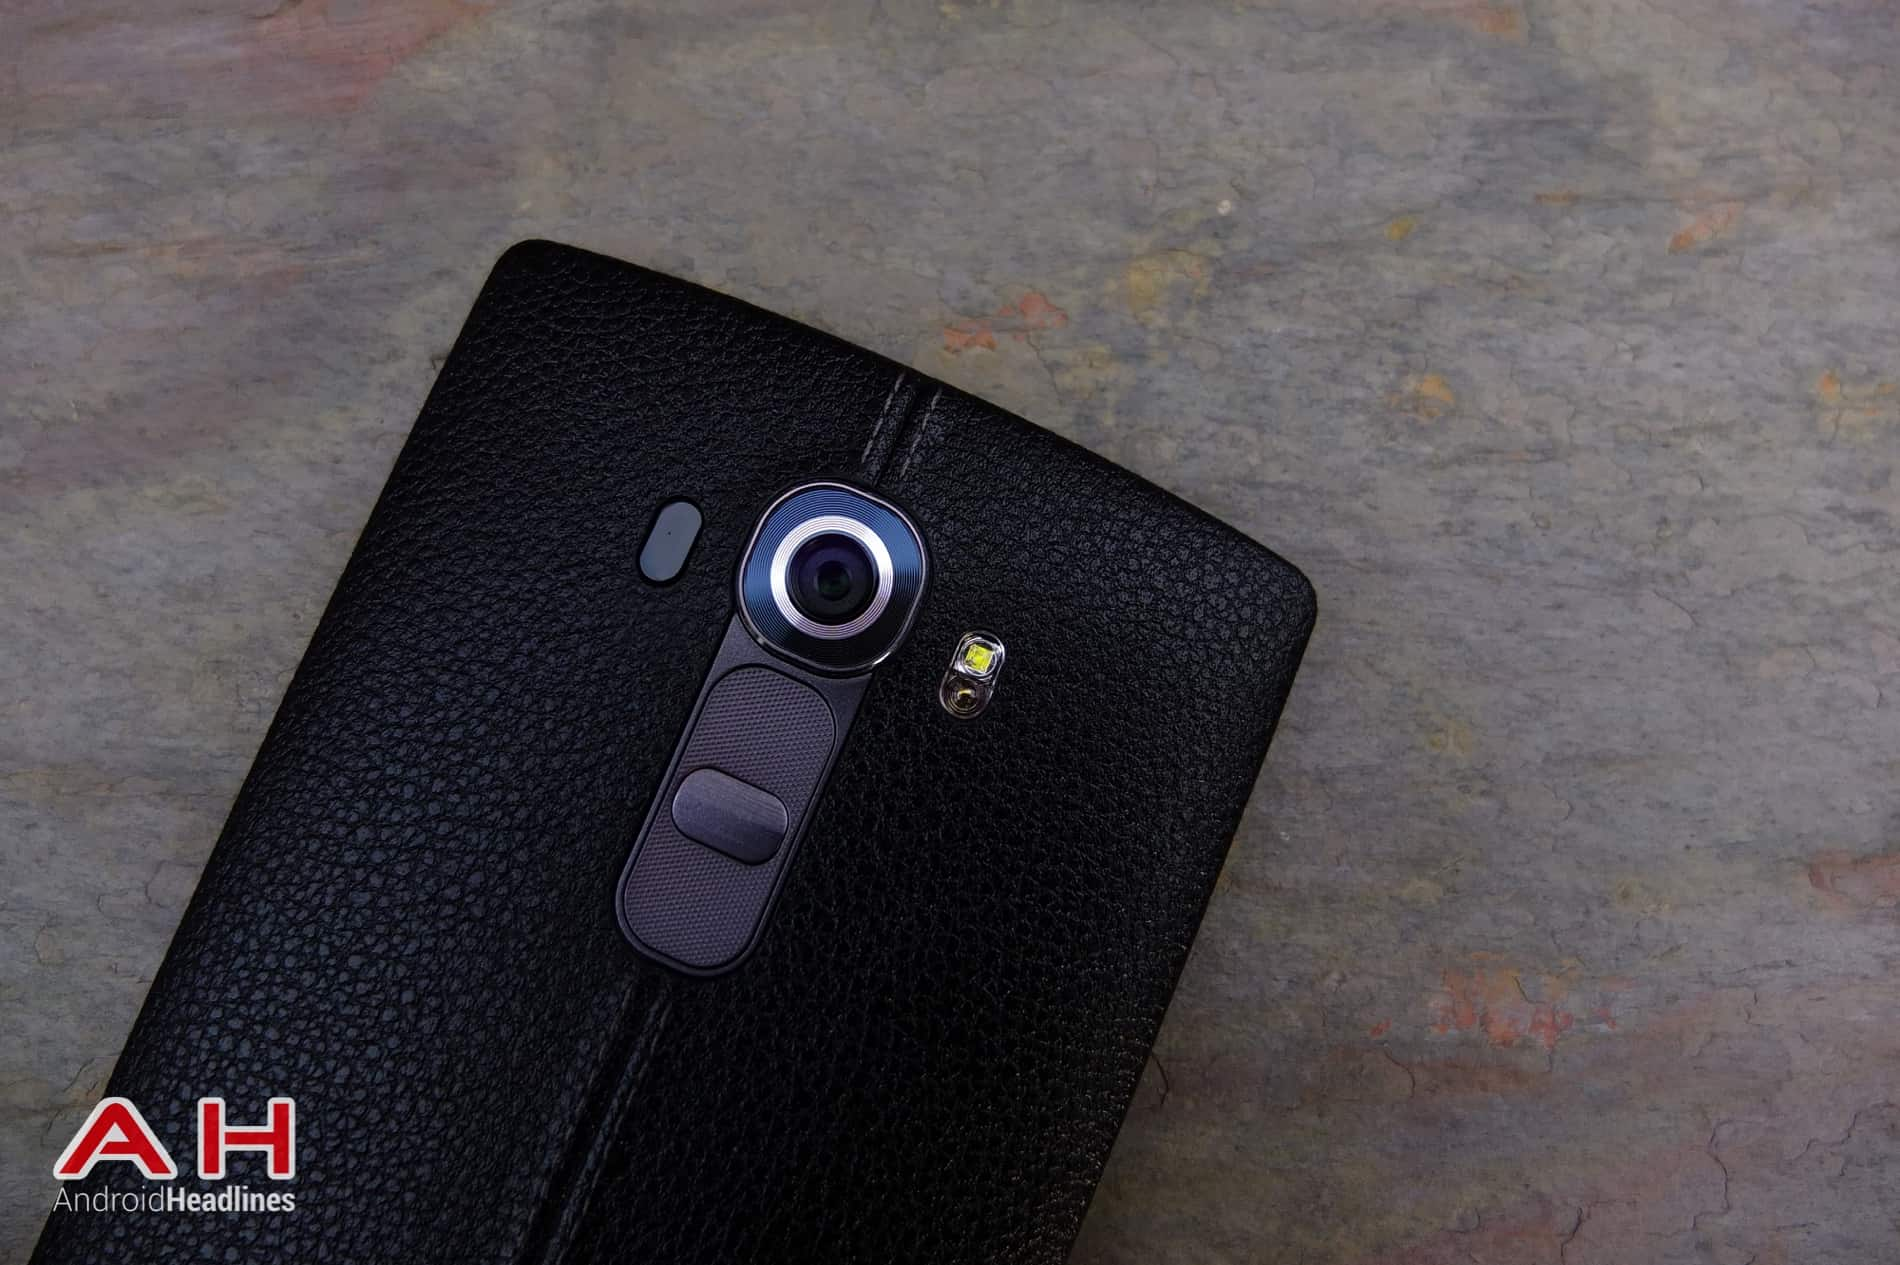 LG G4 BlackLeather TD AH 14